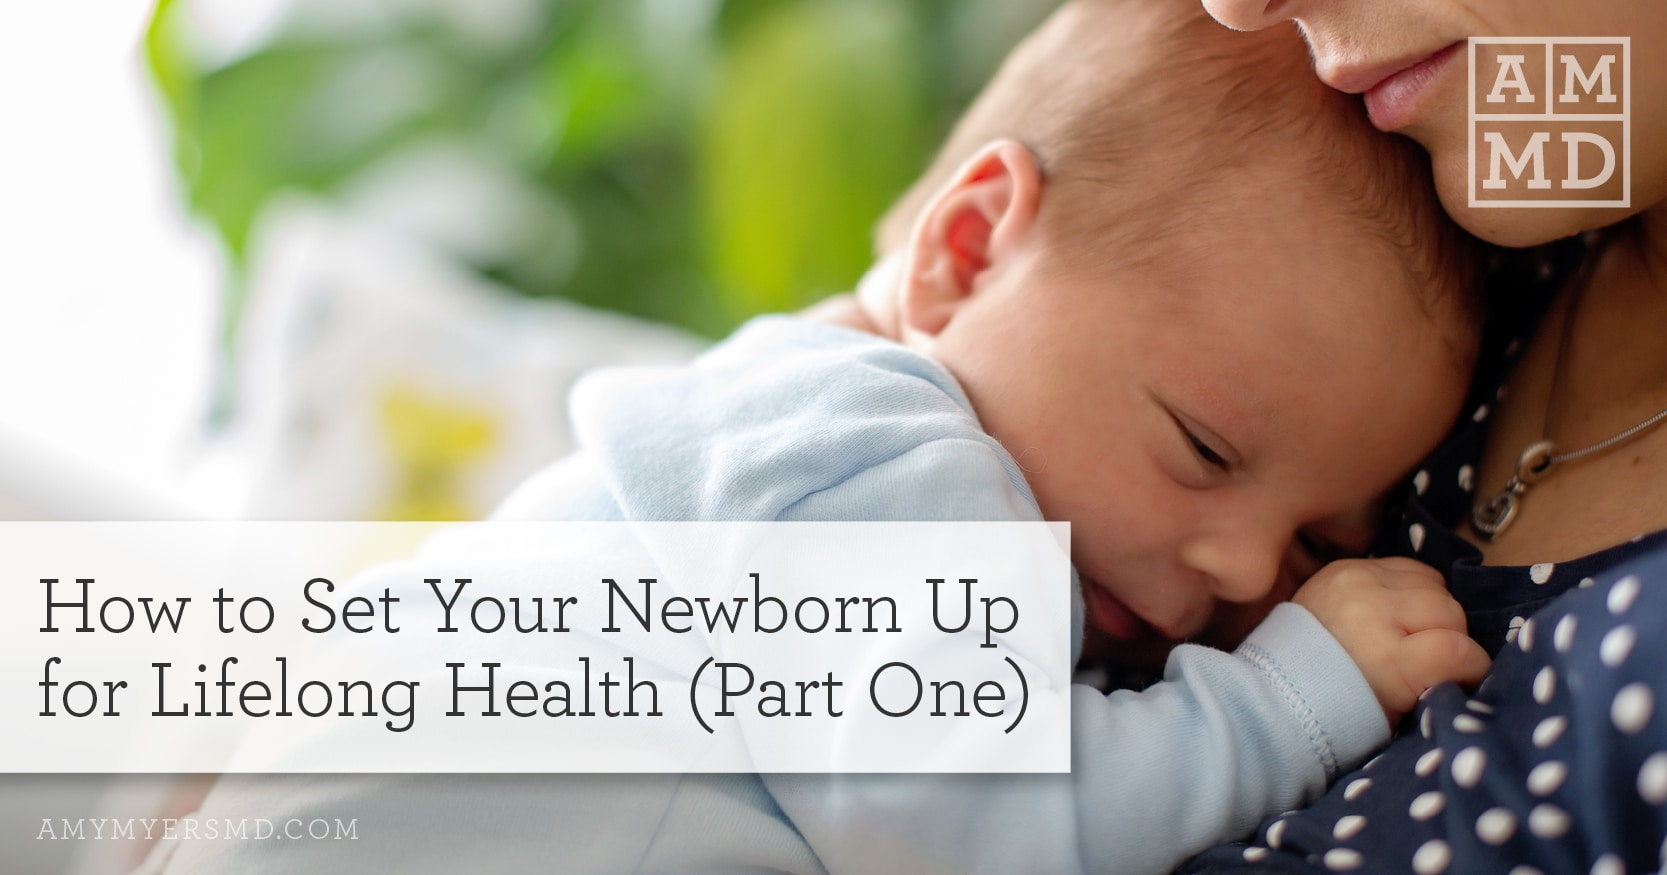 How to Set Your Newborn Up For Lifelong Health (Part One) - A Woman with Her Newborn Baby - Featured Image - Amy Myers MD